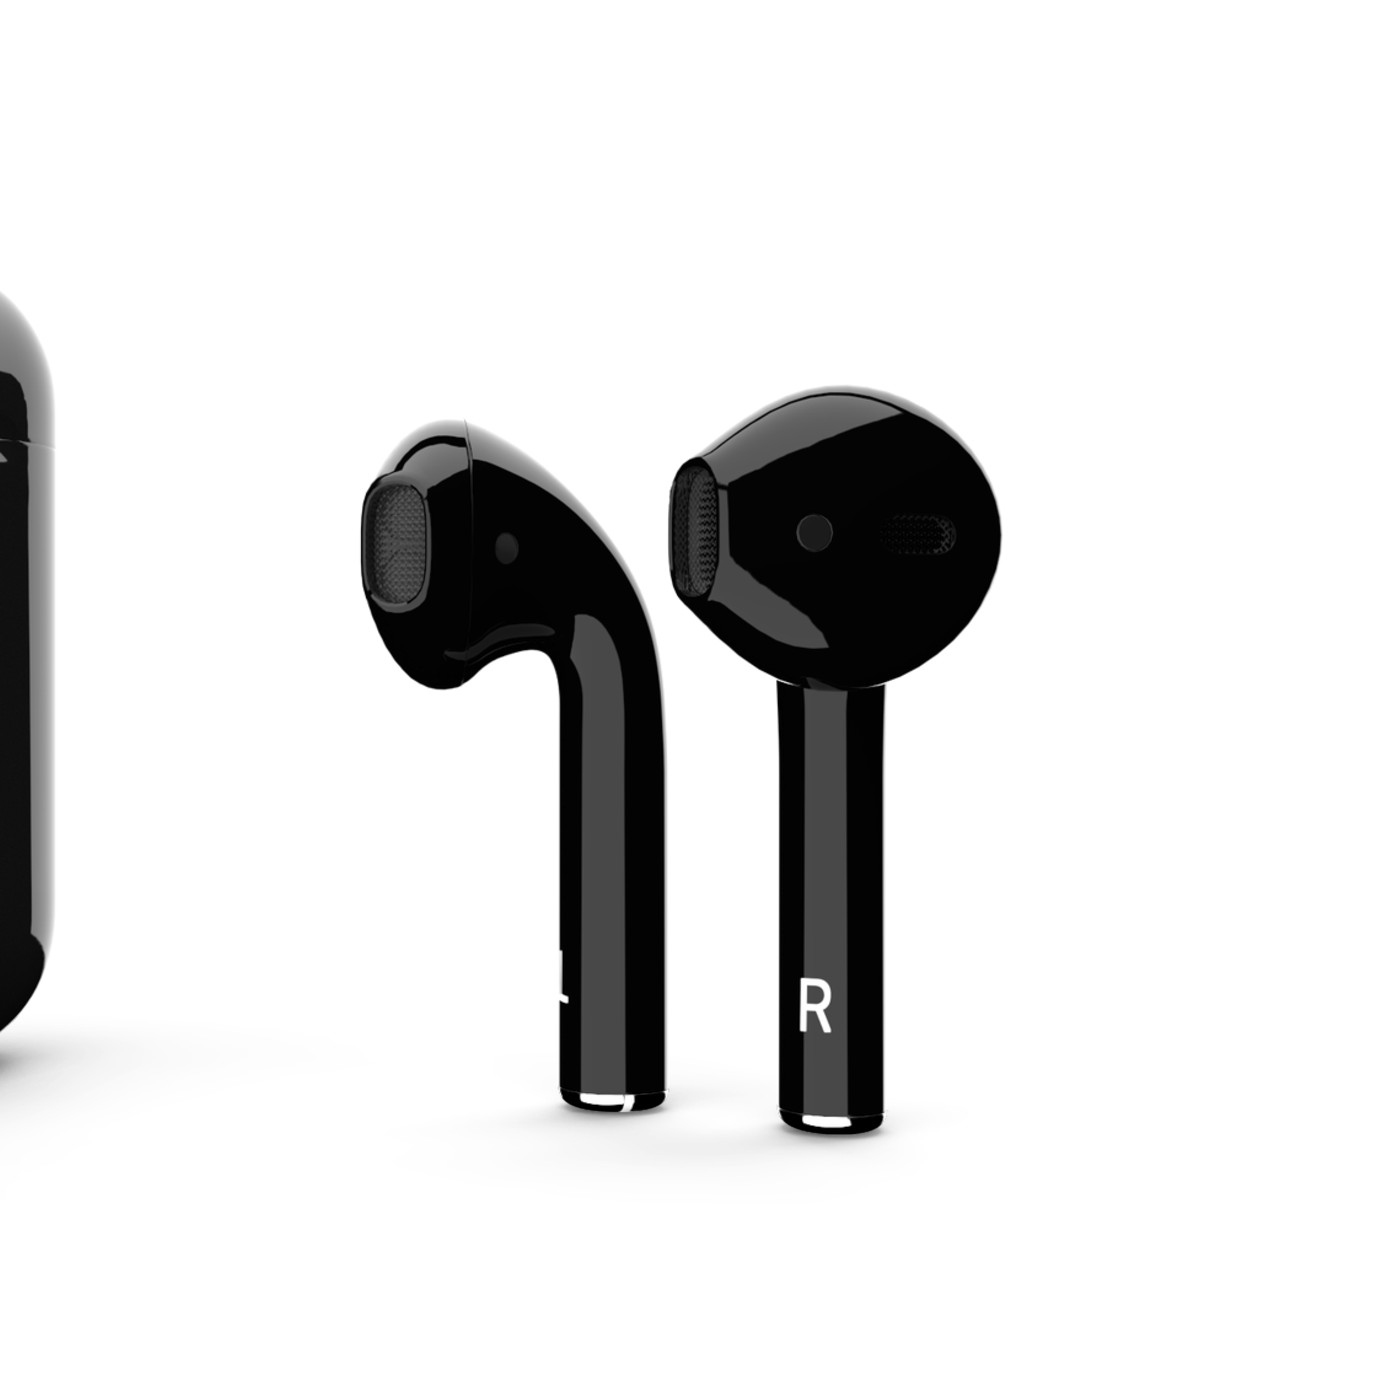 ColorWare will paint you a pair of black AirPods for a $130